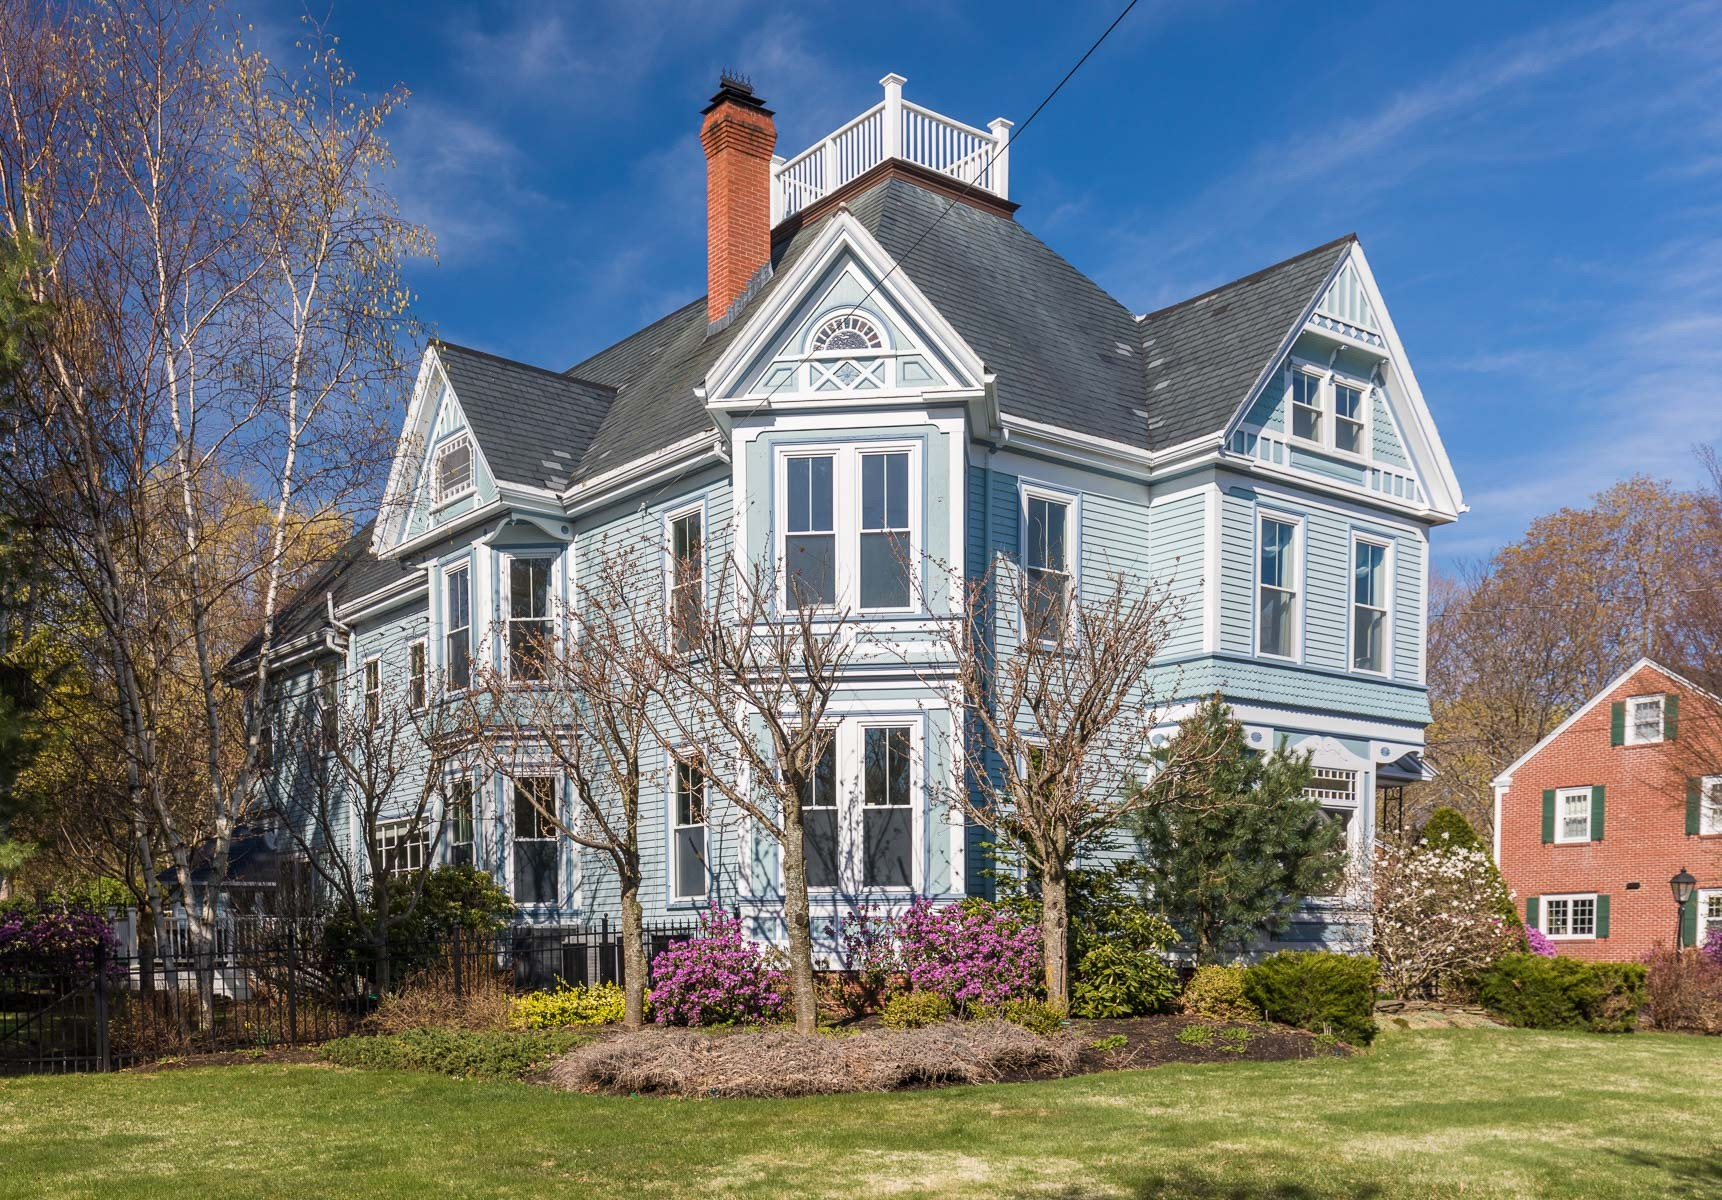 独户住宅 为 销售 在 Stunning Restored Victorian 293 High Street Newburyport, 01950 美国